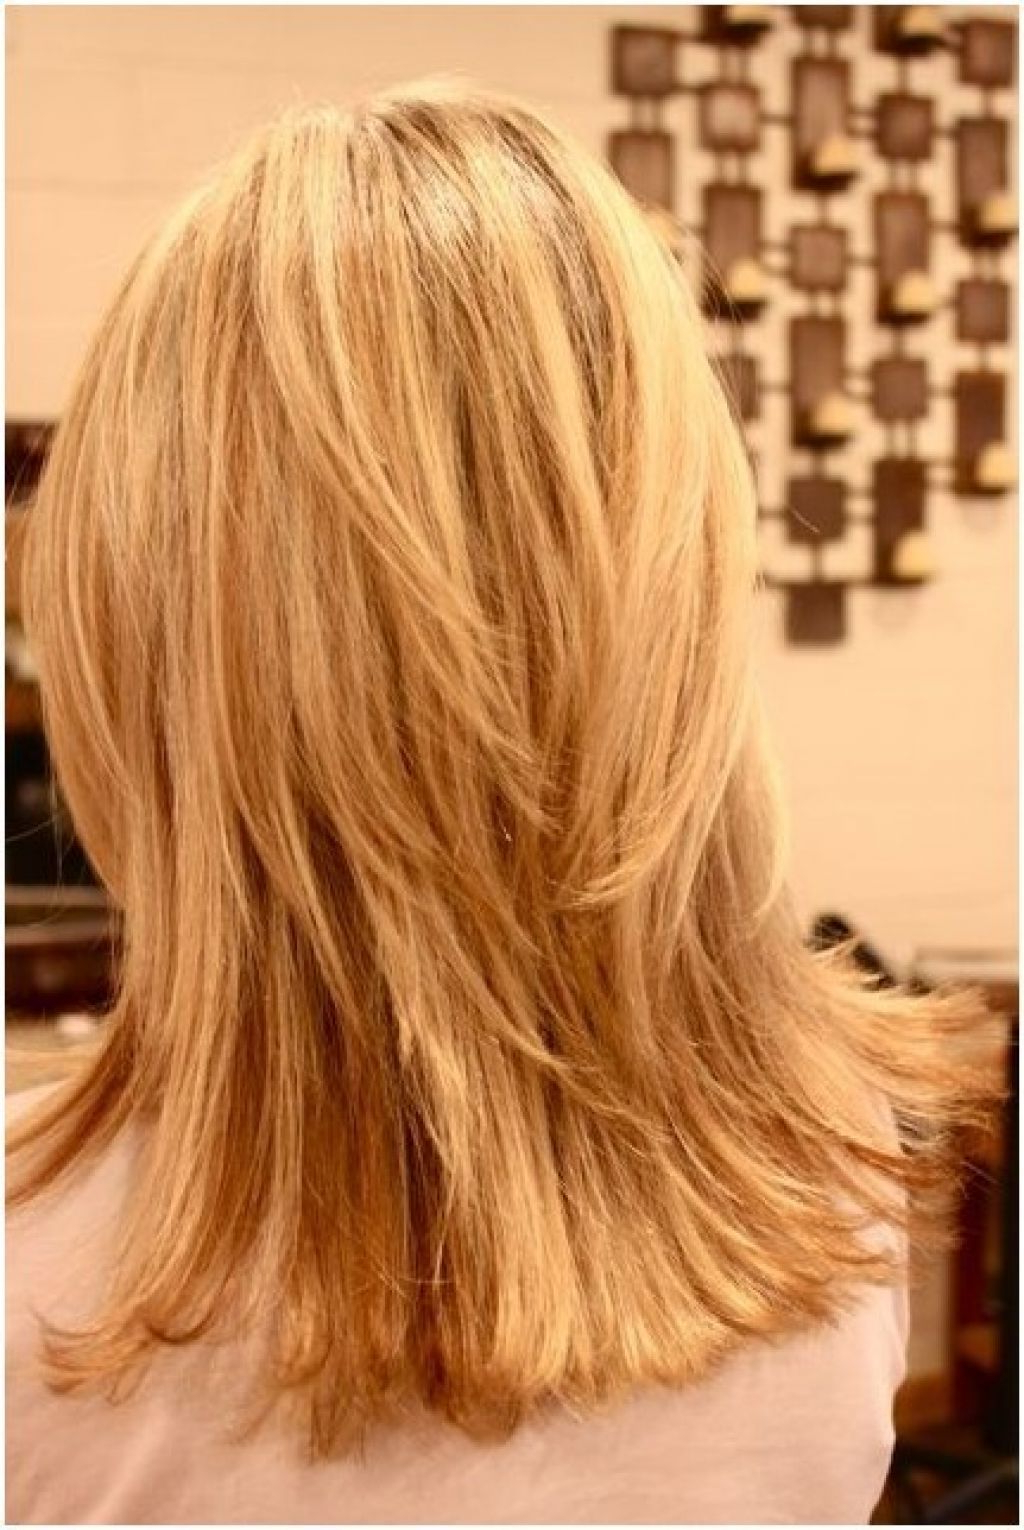 Most Recently Released Medium Haircuts Layered With 27 Awesome Medium Length Layered Haircut Back View Images (View 9 of 20)